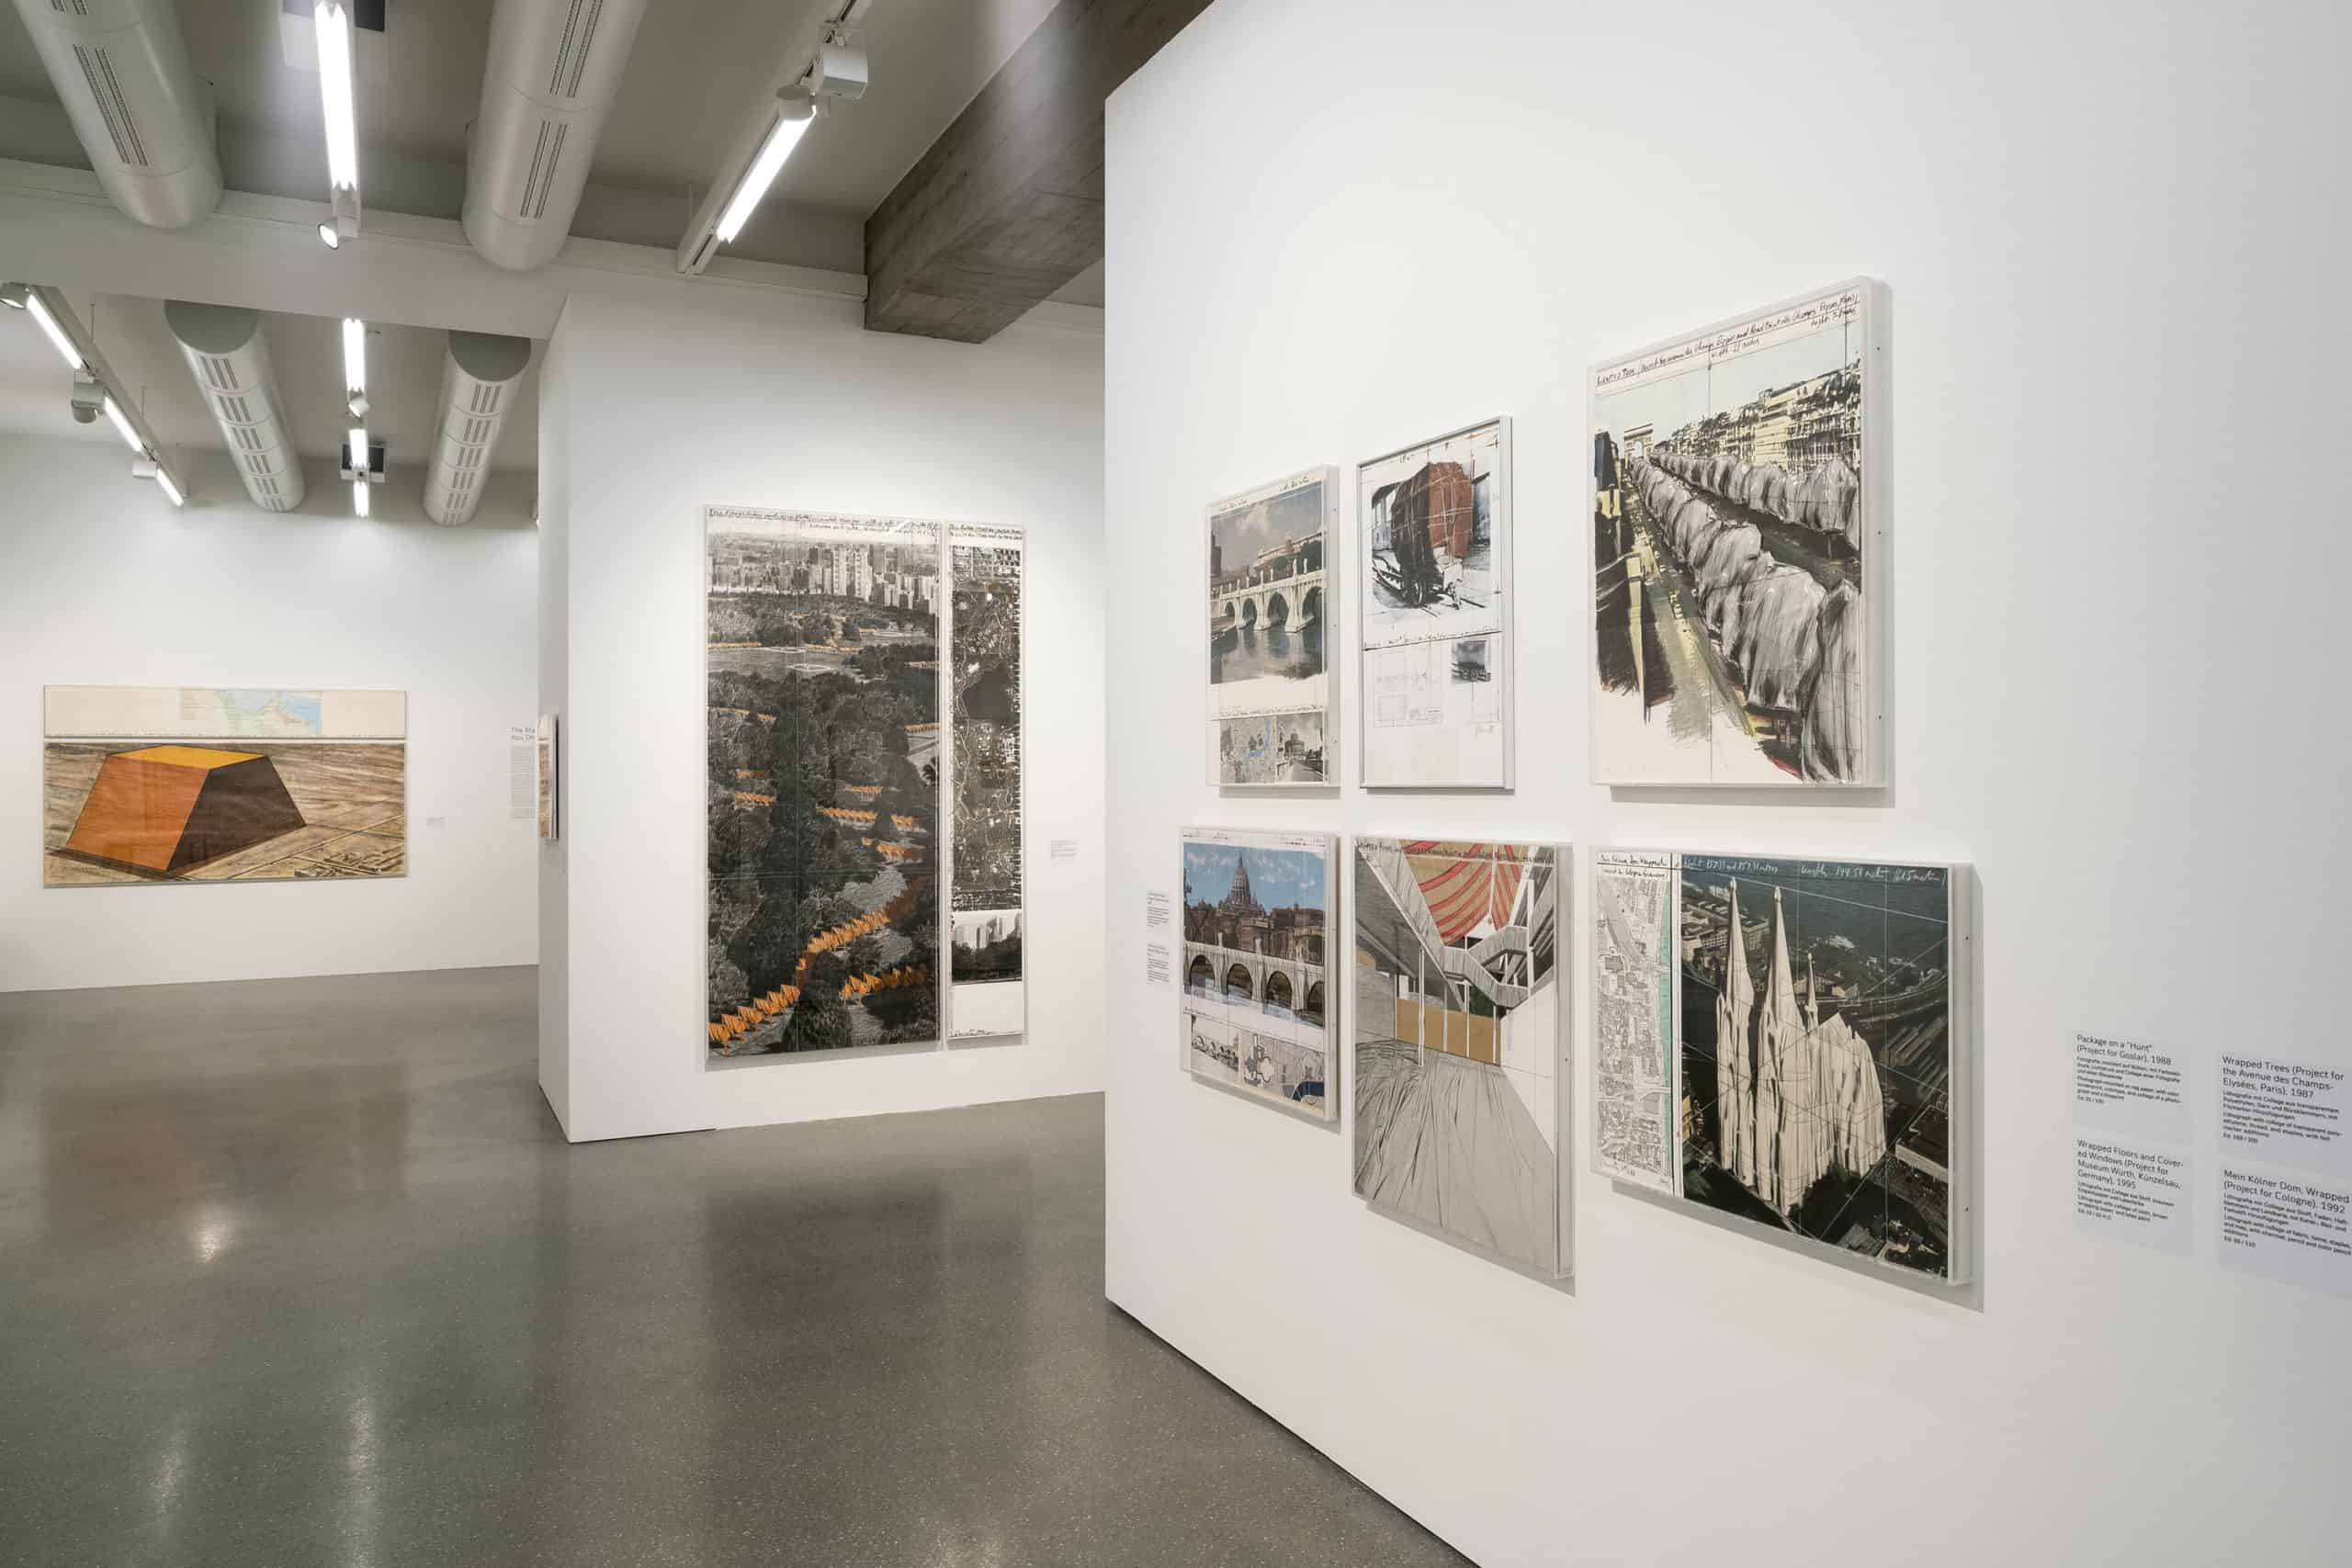 """Installation view, Exhibition """"Christo and Jeanne-Claude: Projects 1963-2020"""", Palais Populaire, Berlin (6.5.-17.8.2020), photo: Mathias Schormann © Christo"""